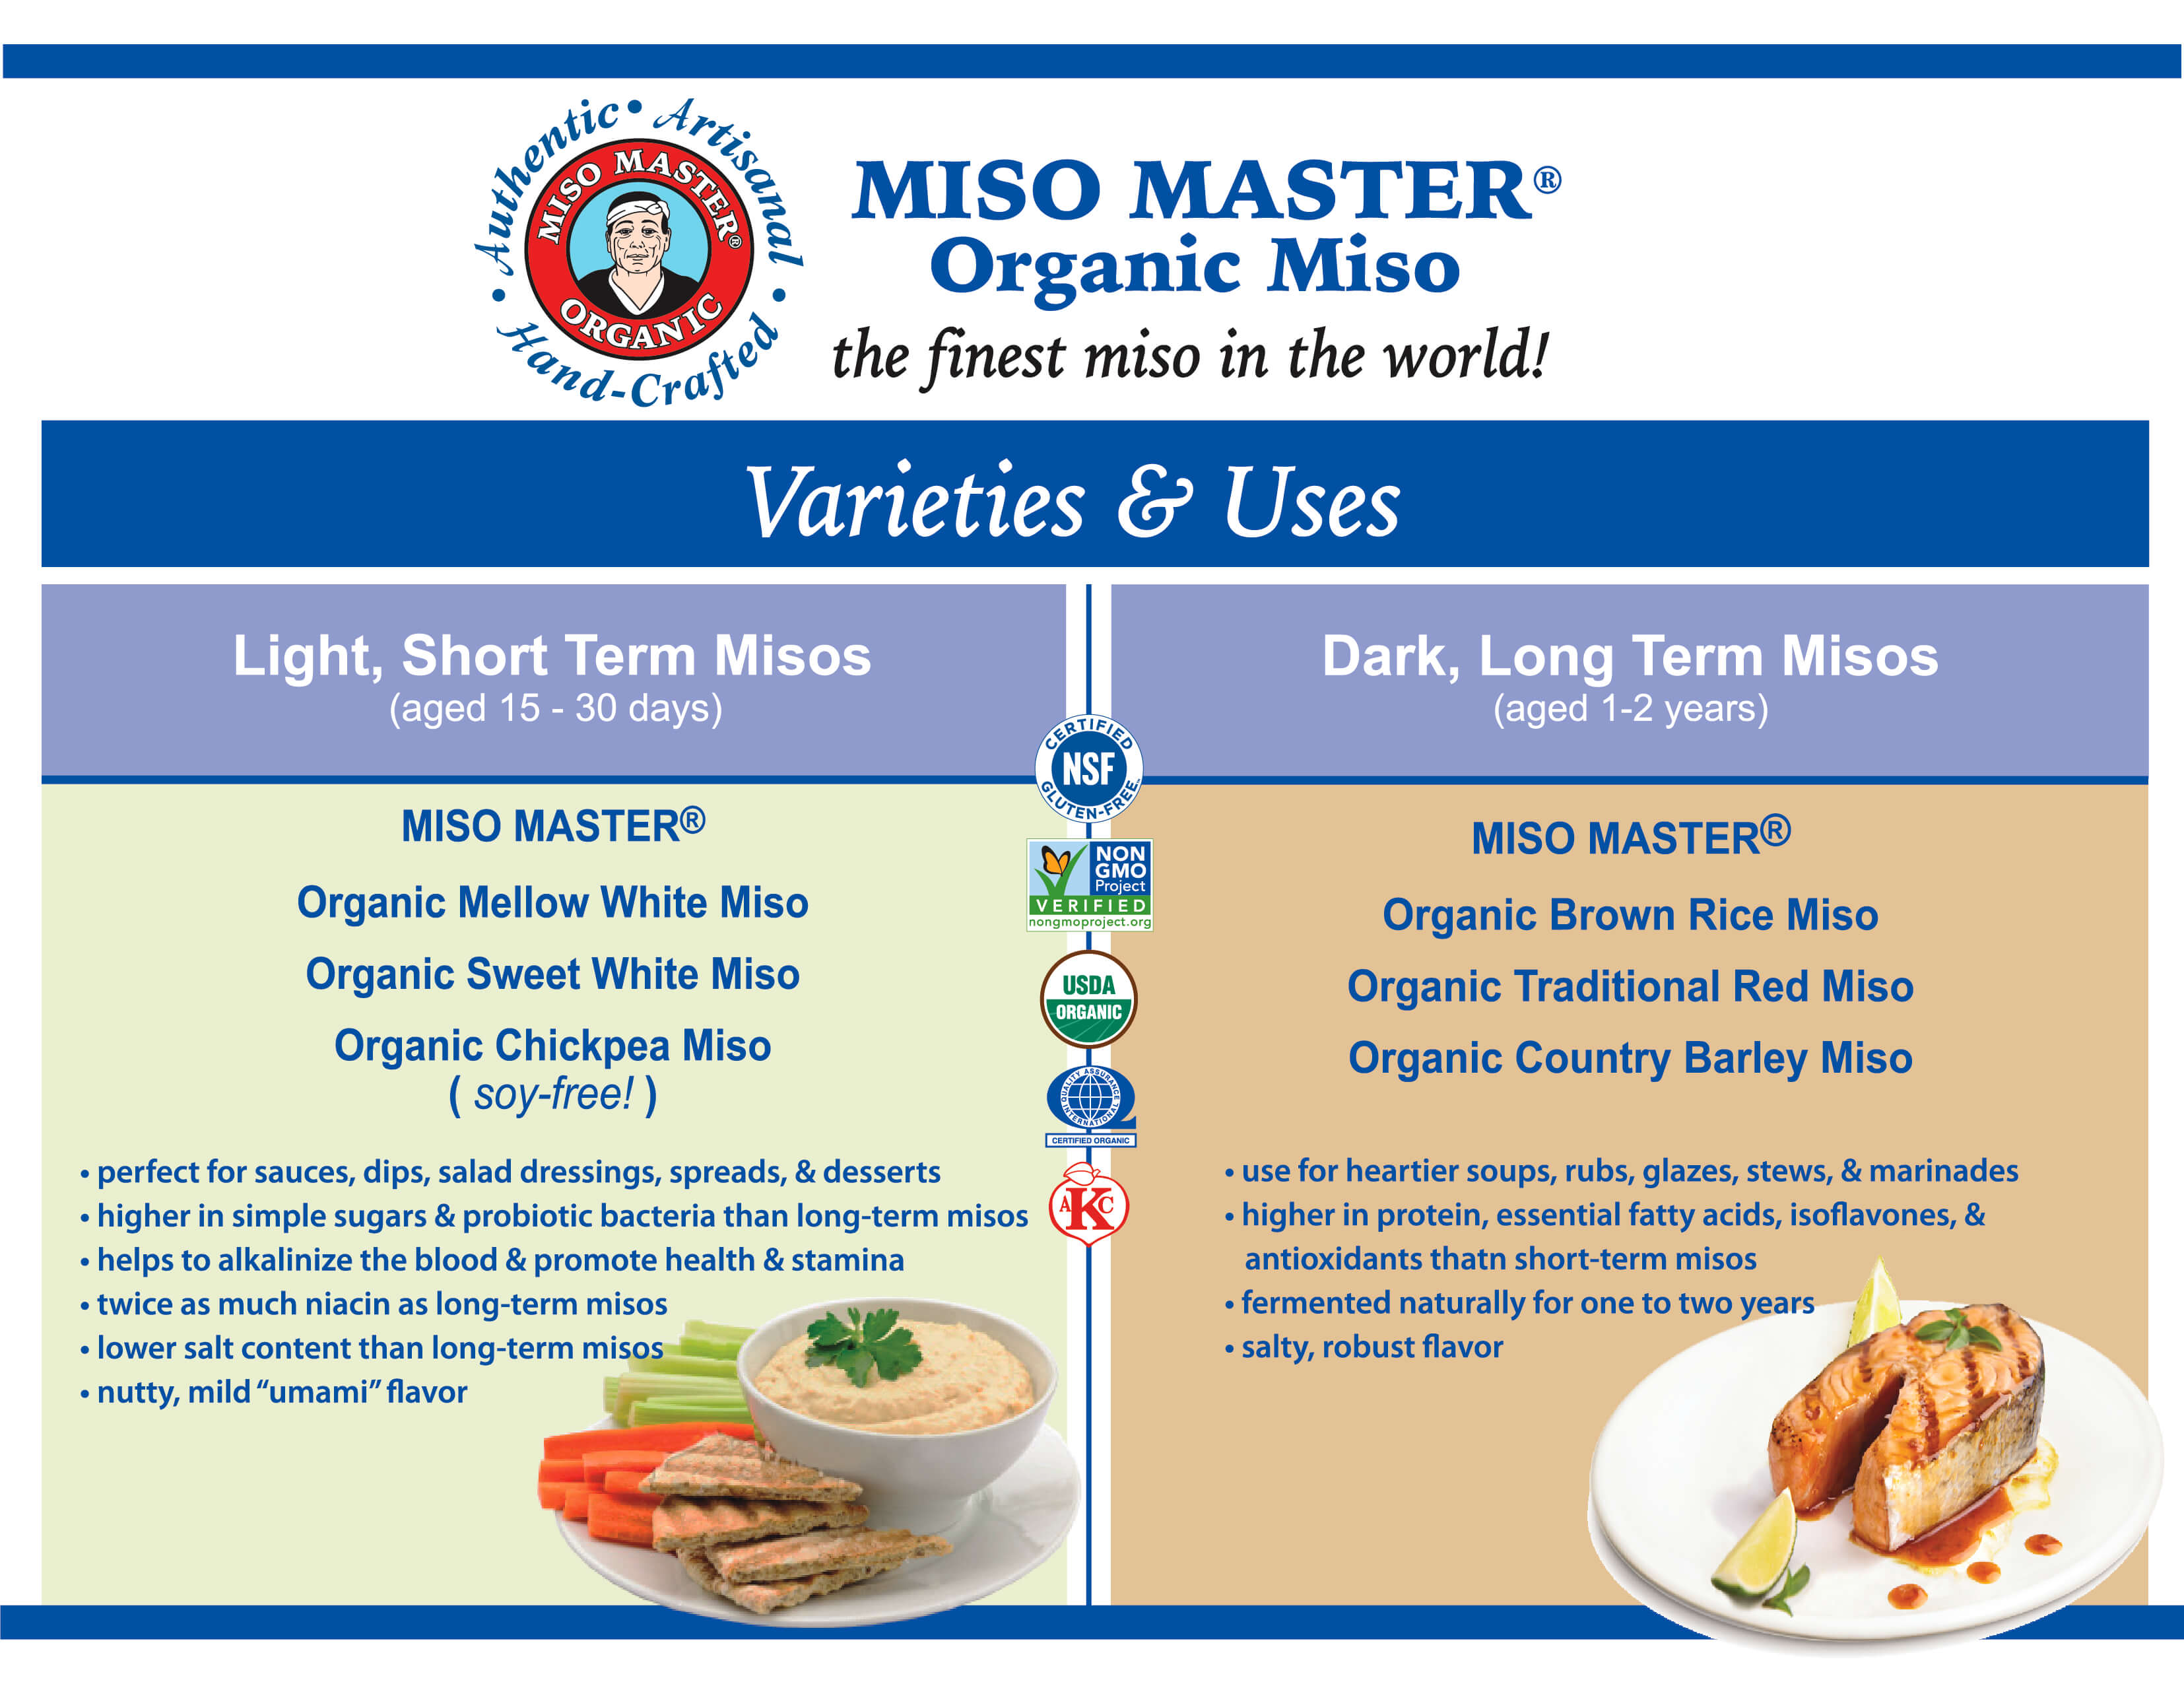 miso-master-varieties-and-uses-landscape